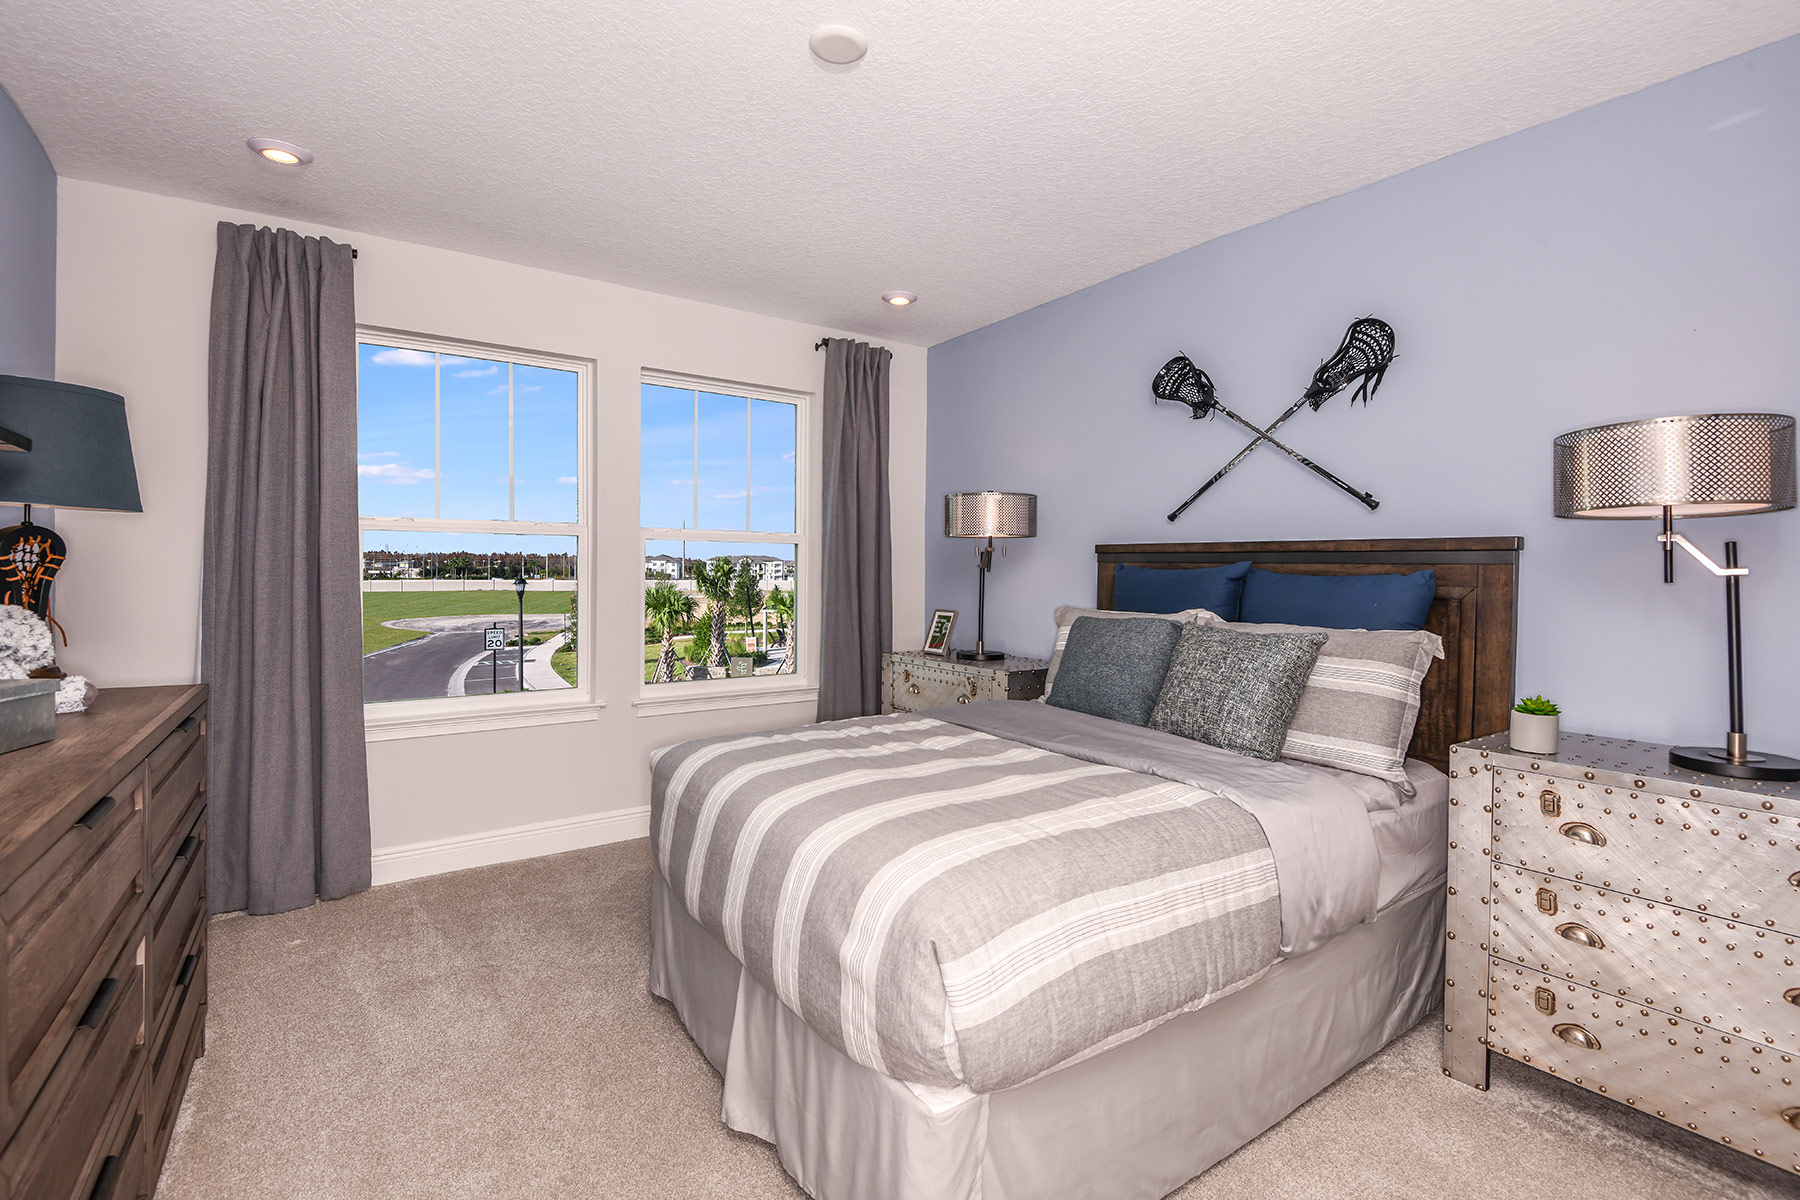 Venice Plan Bedroom at Parkview at Long Lake Ranch in Lutz Florida by Mattamy Homes